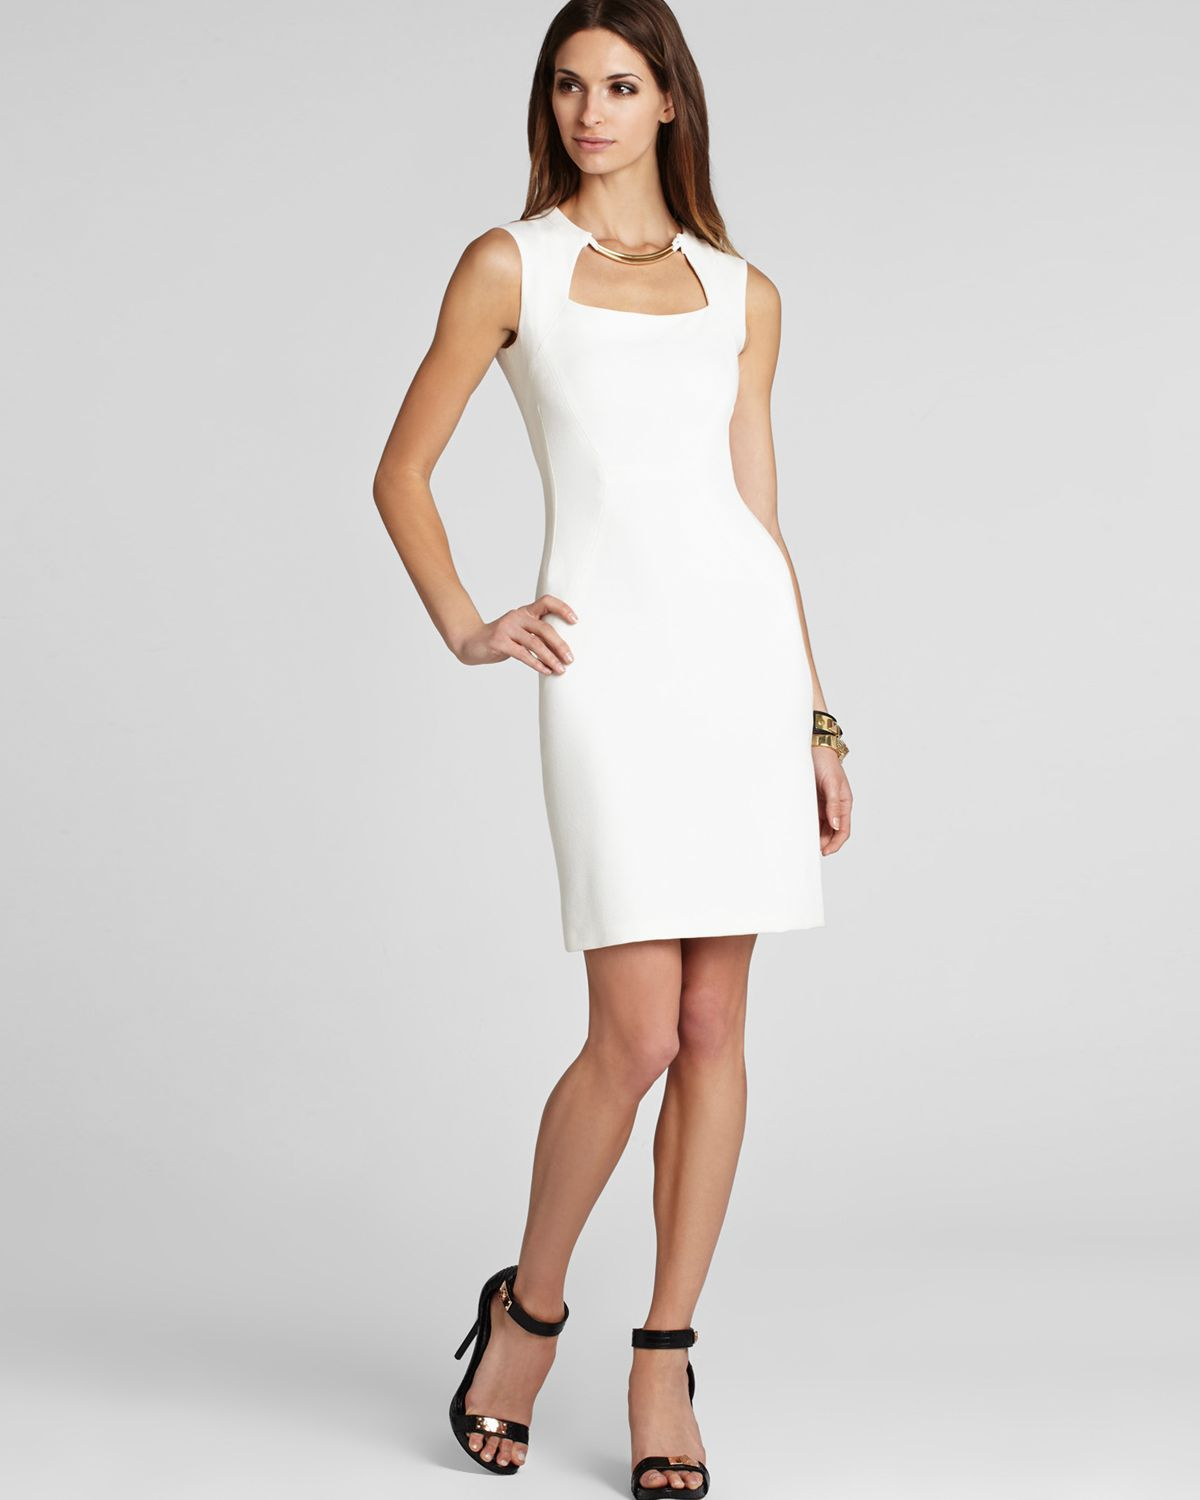 Lyst bcbgmaxazria dress clara blocked sheath in white for Bloomingdales dresses for wedding guests